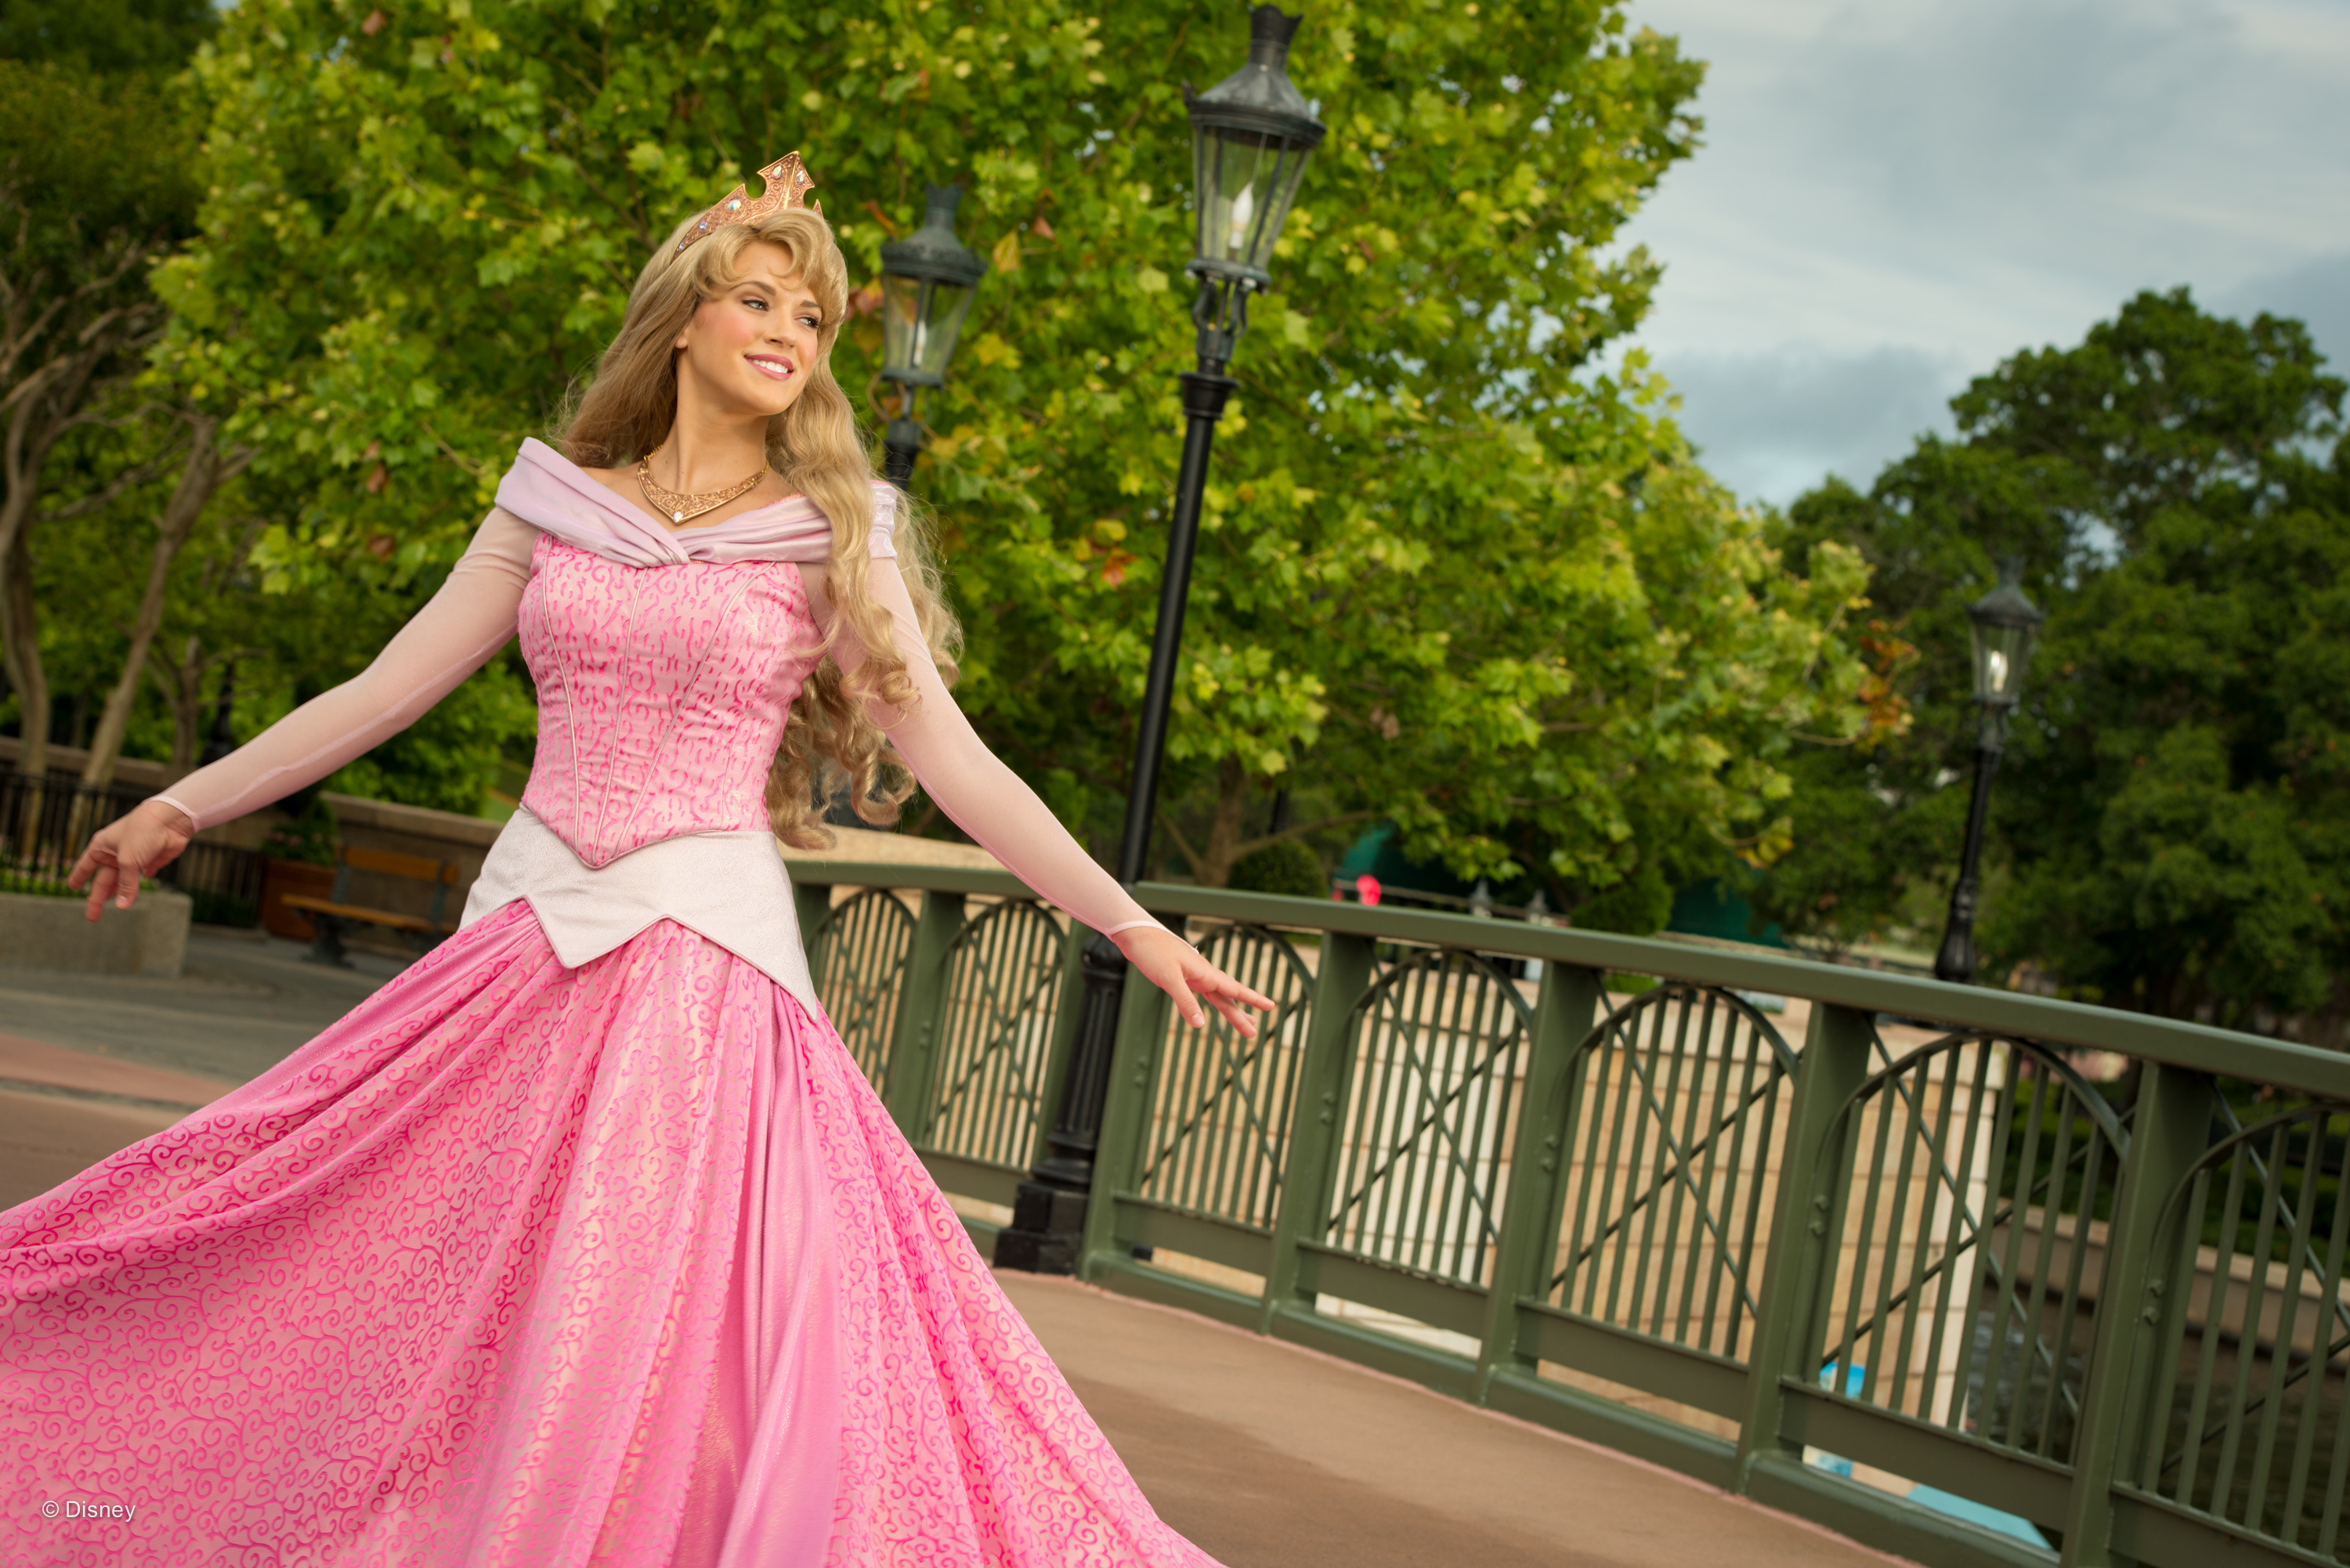 Where to Meet all the Walt Disney World Princesses, a guide featured by top US Disney blogger, Marcie and the Mouse: Families can meet Princess Aurora (also known as Sleeping Beauty) at Walt Disney World